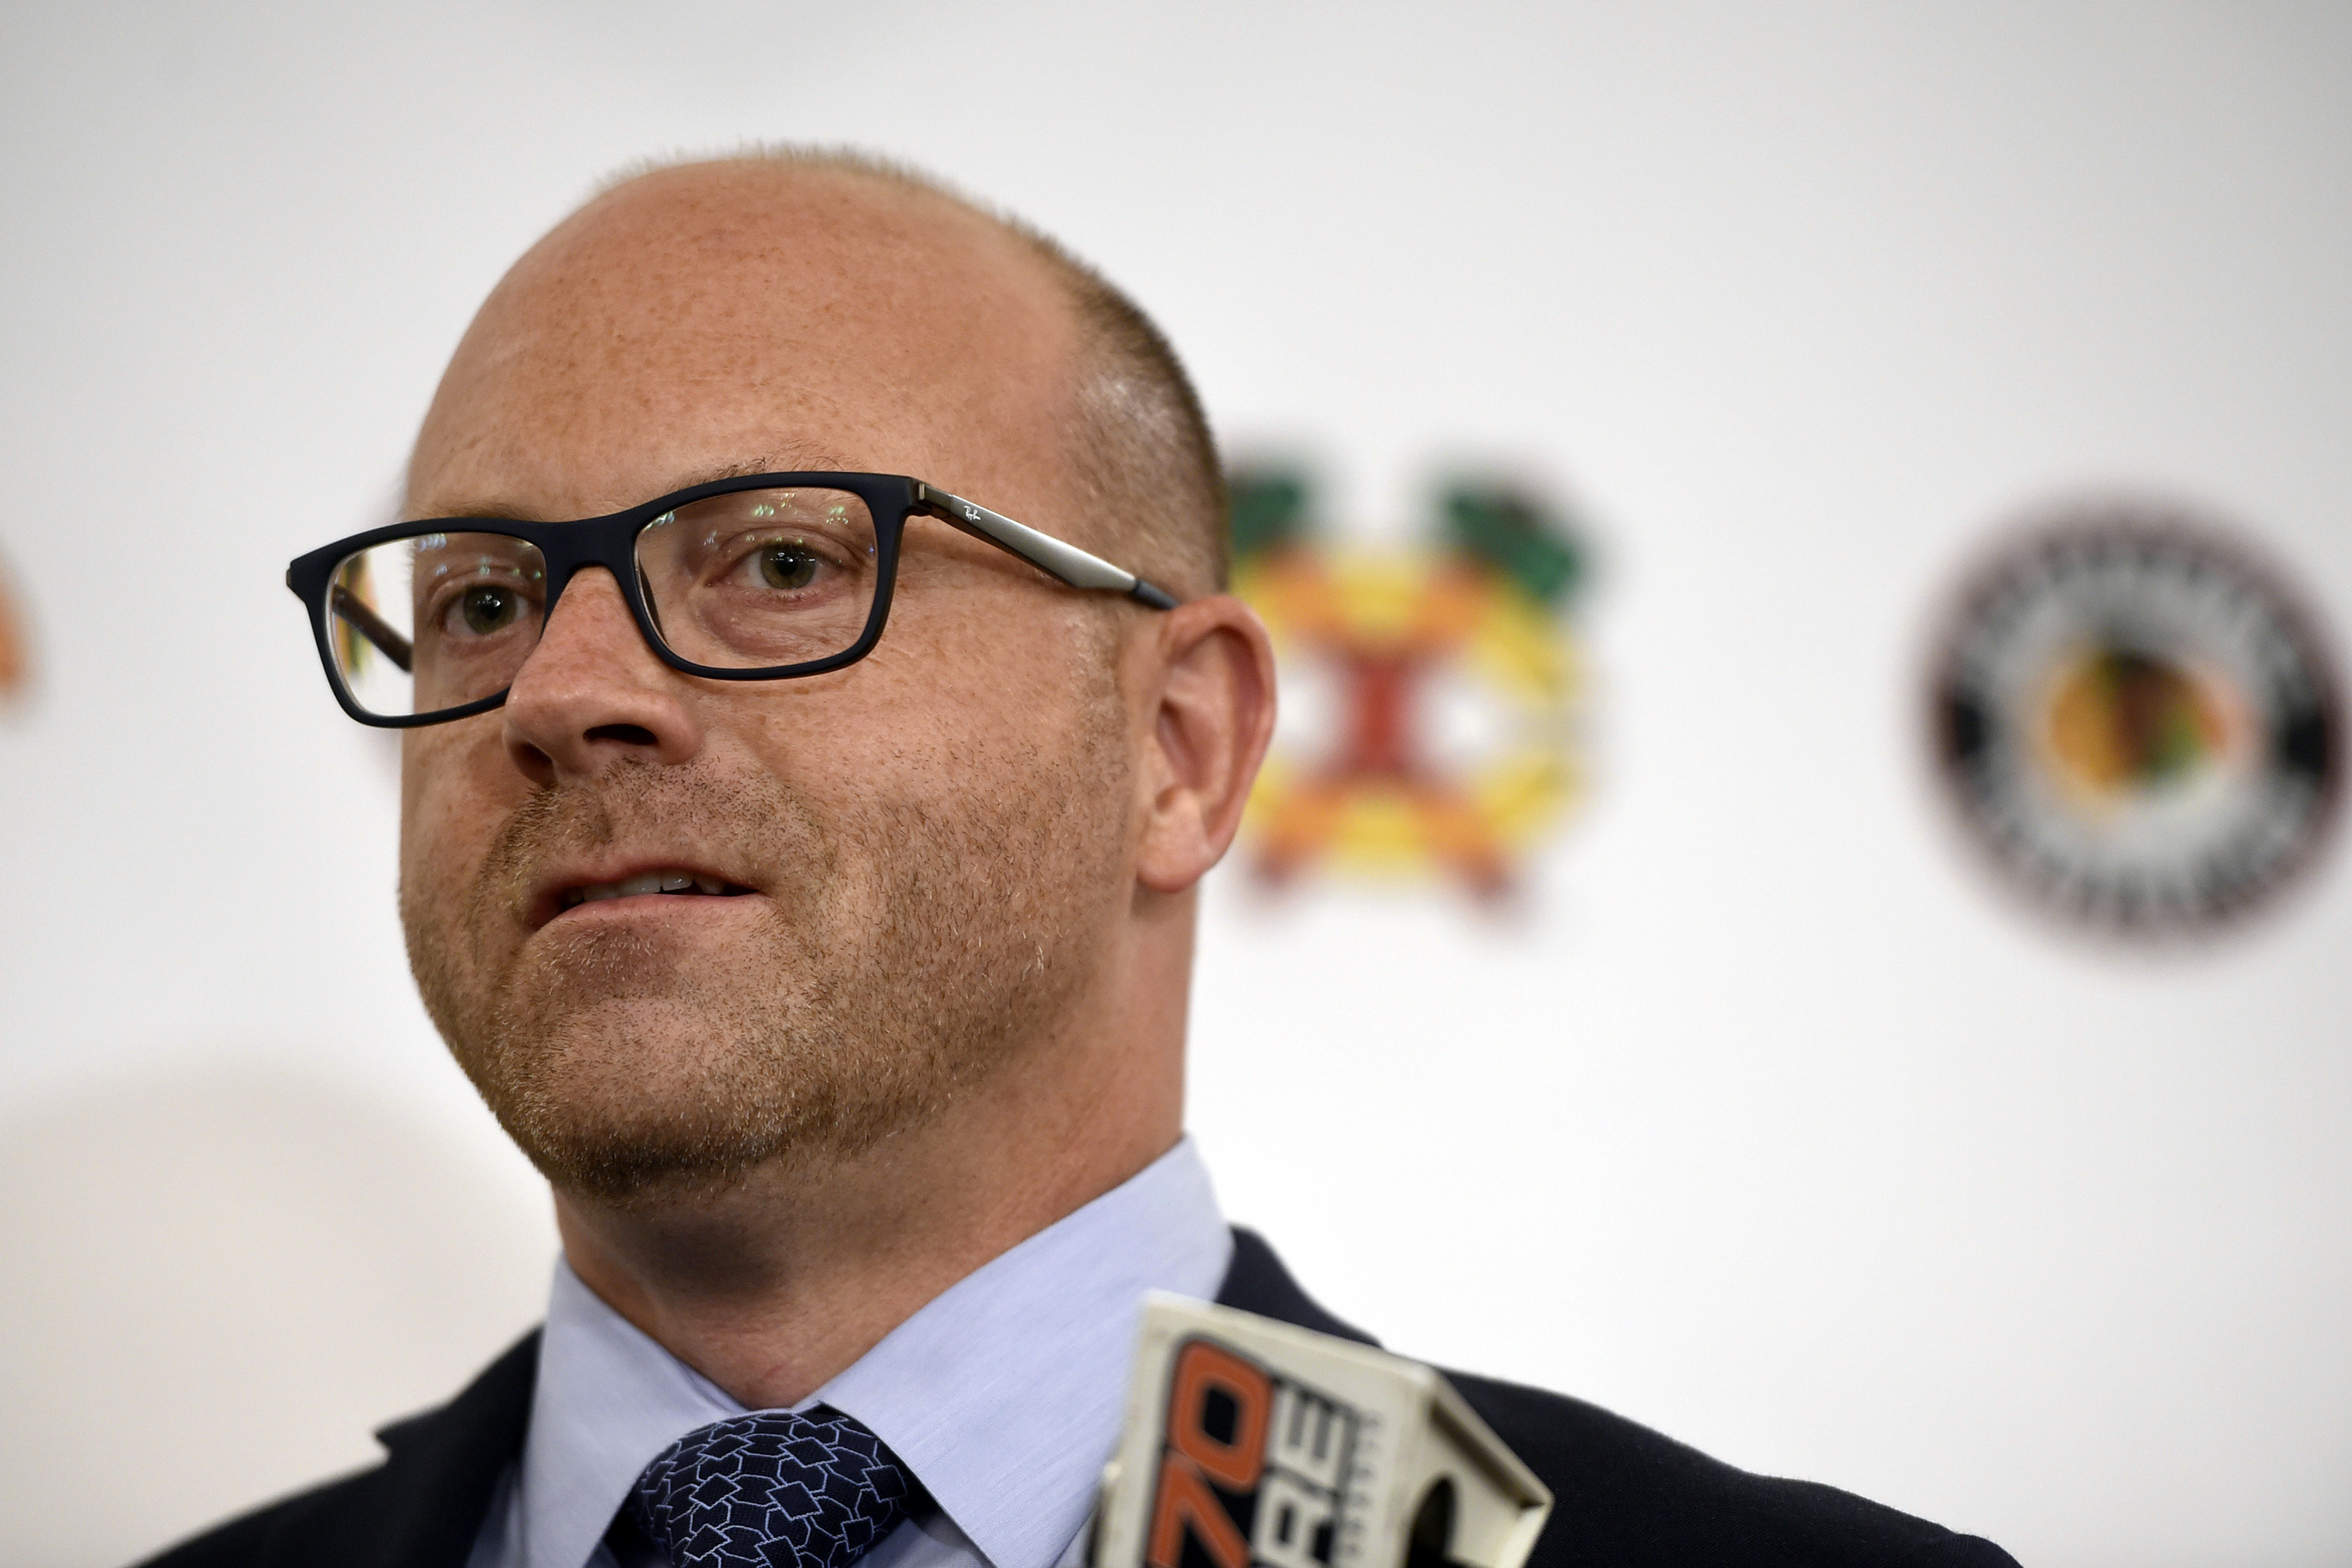 FILE - In this July 27, 2018, file photo, Chicago Blackhawks general manager Stan Bowman speaks to the media during the NHL hockey team's convention in Chicago.